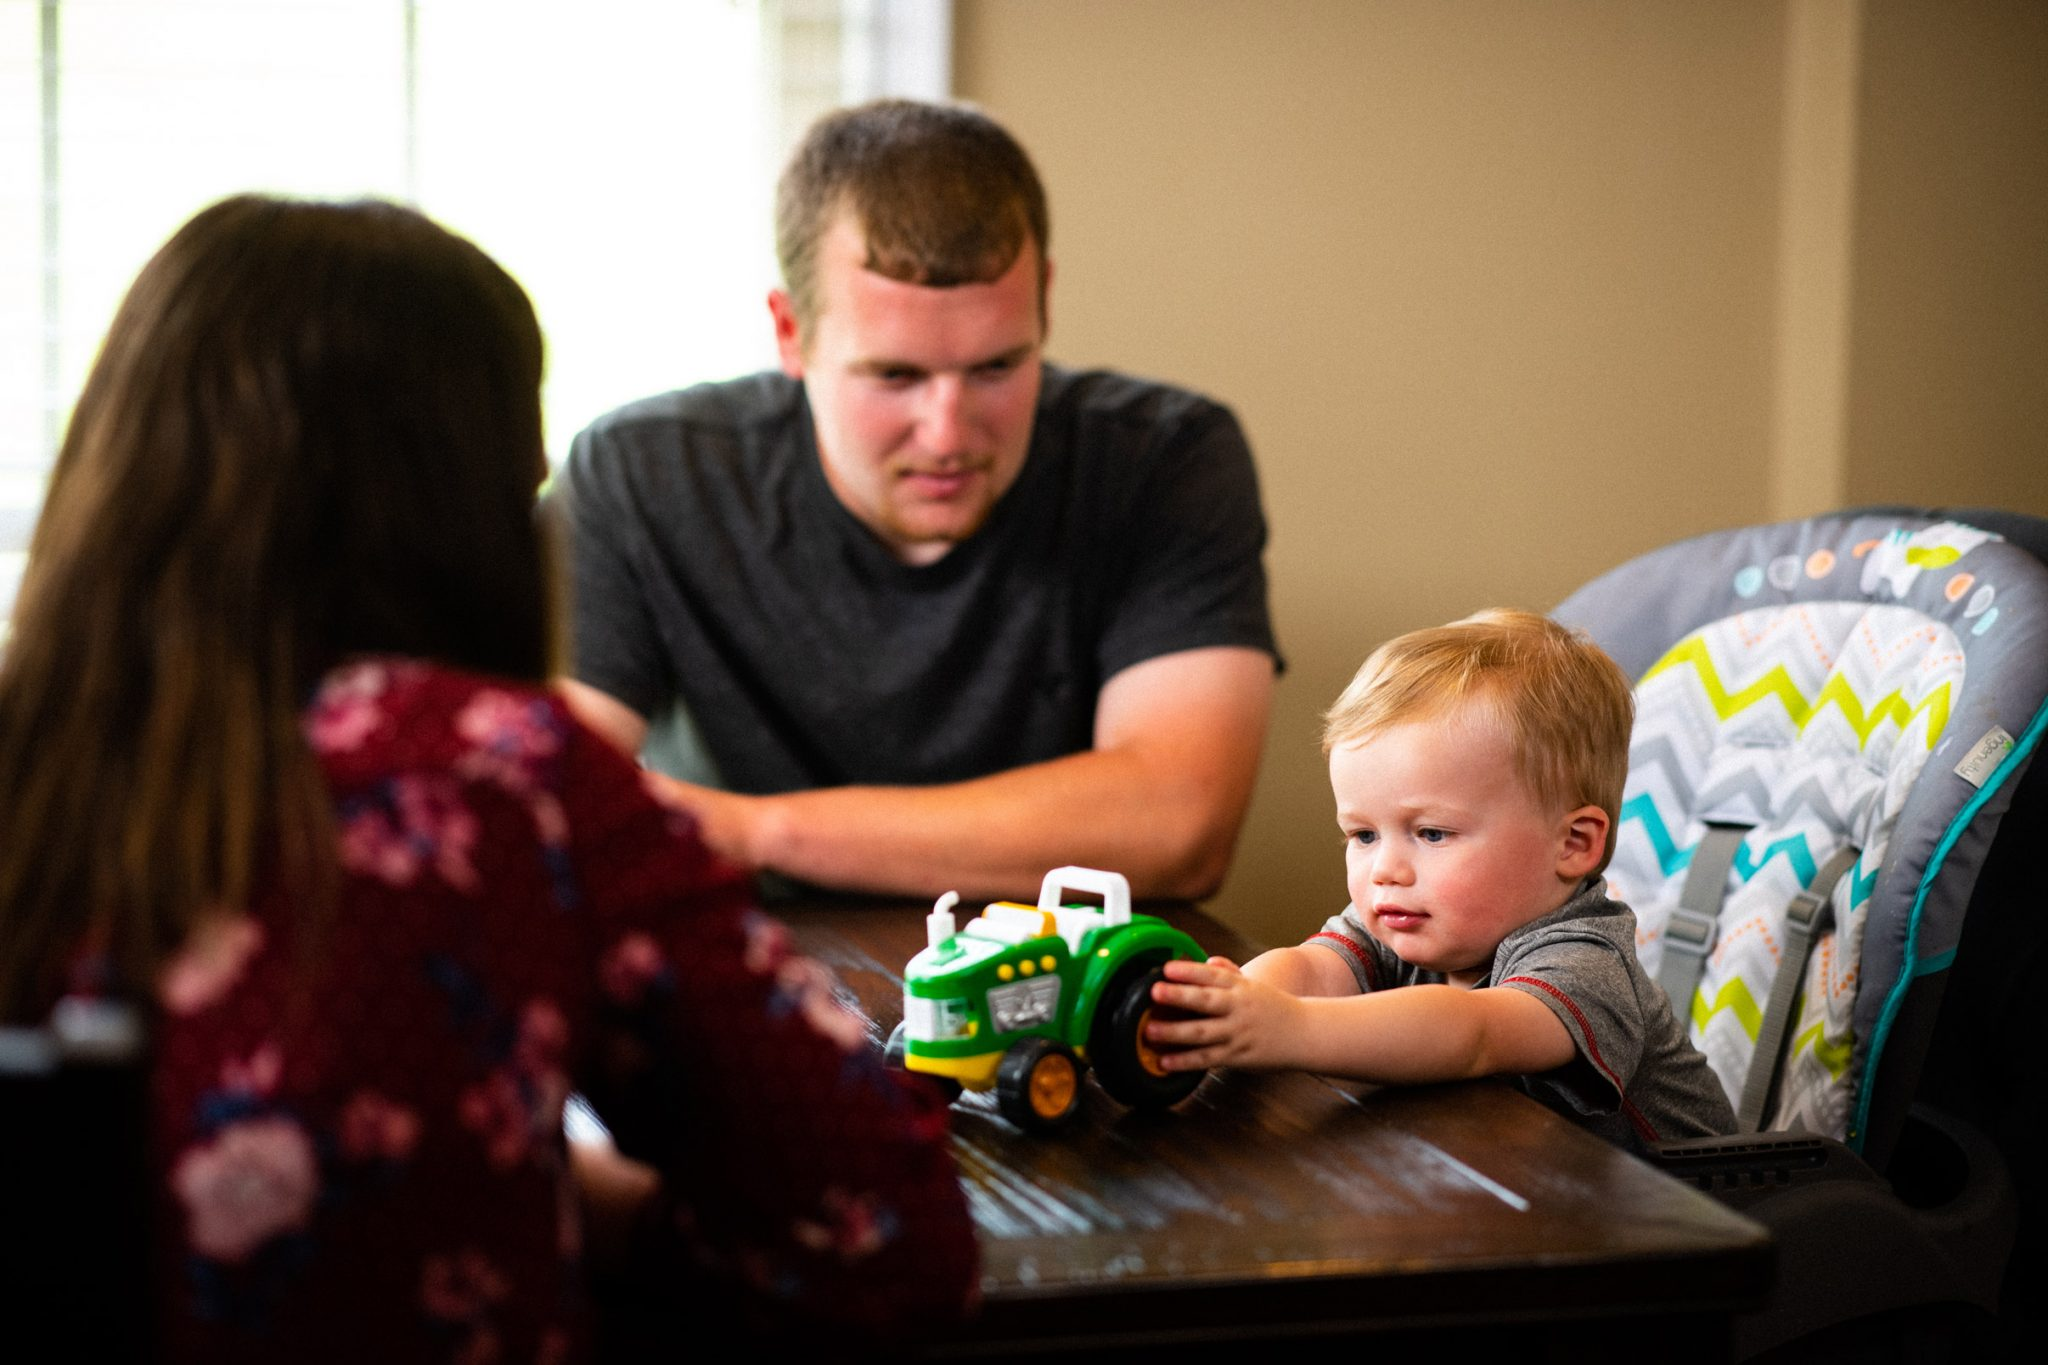 Caleb and Amelia watch Cason play with a toy tractor at their dining room table.